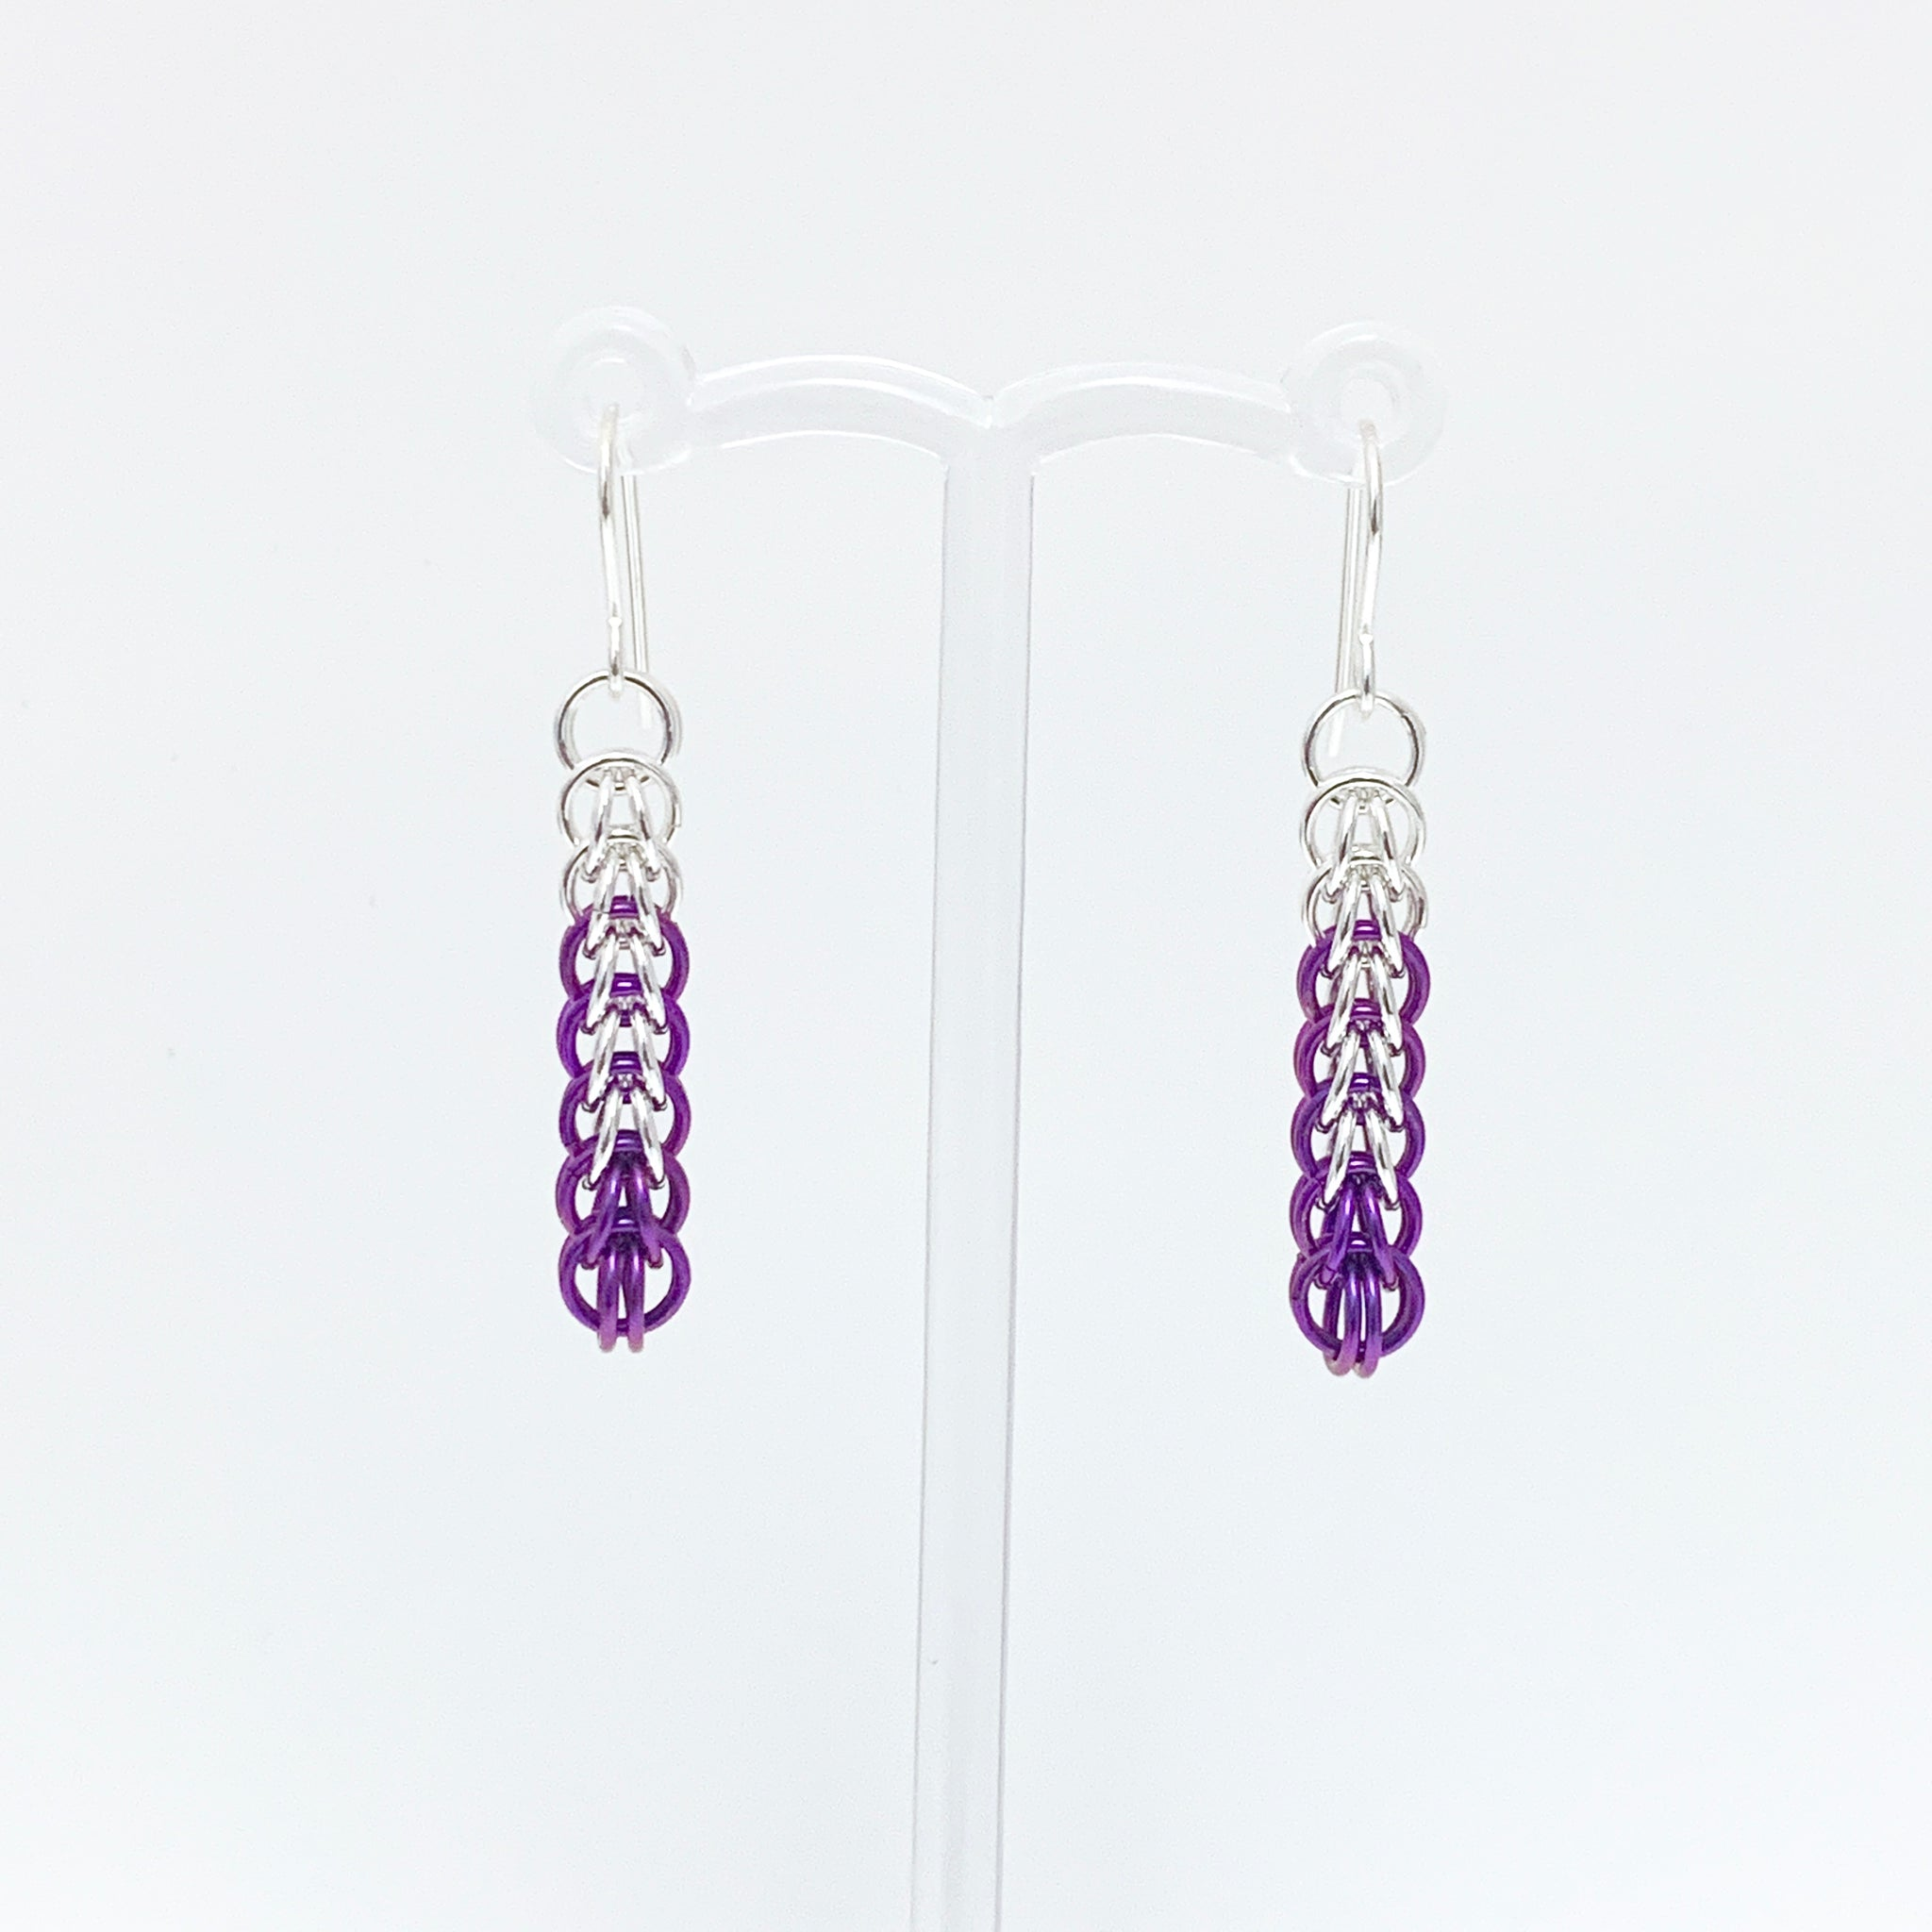 'Ivy' 7 Plum & Silver earrings